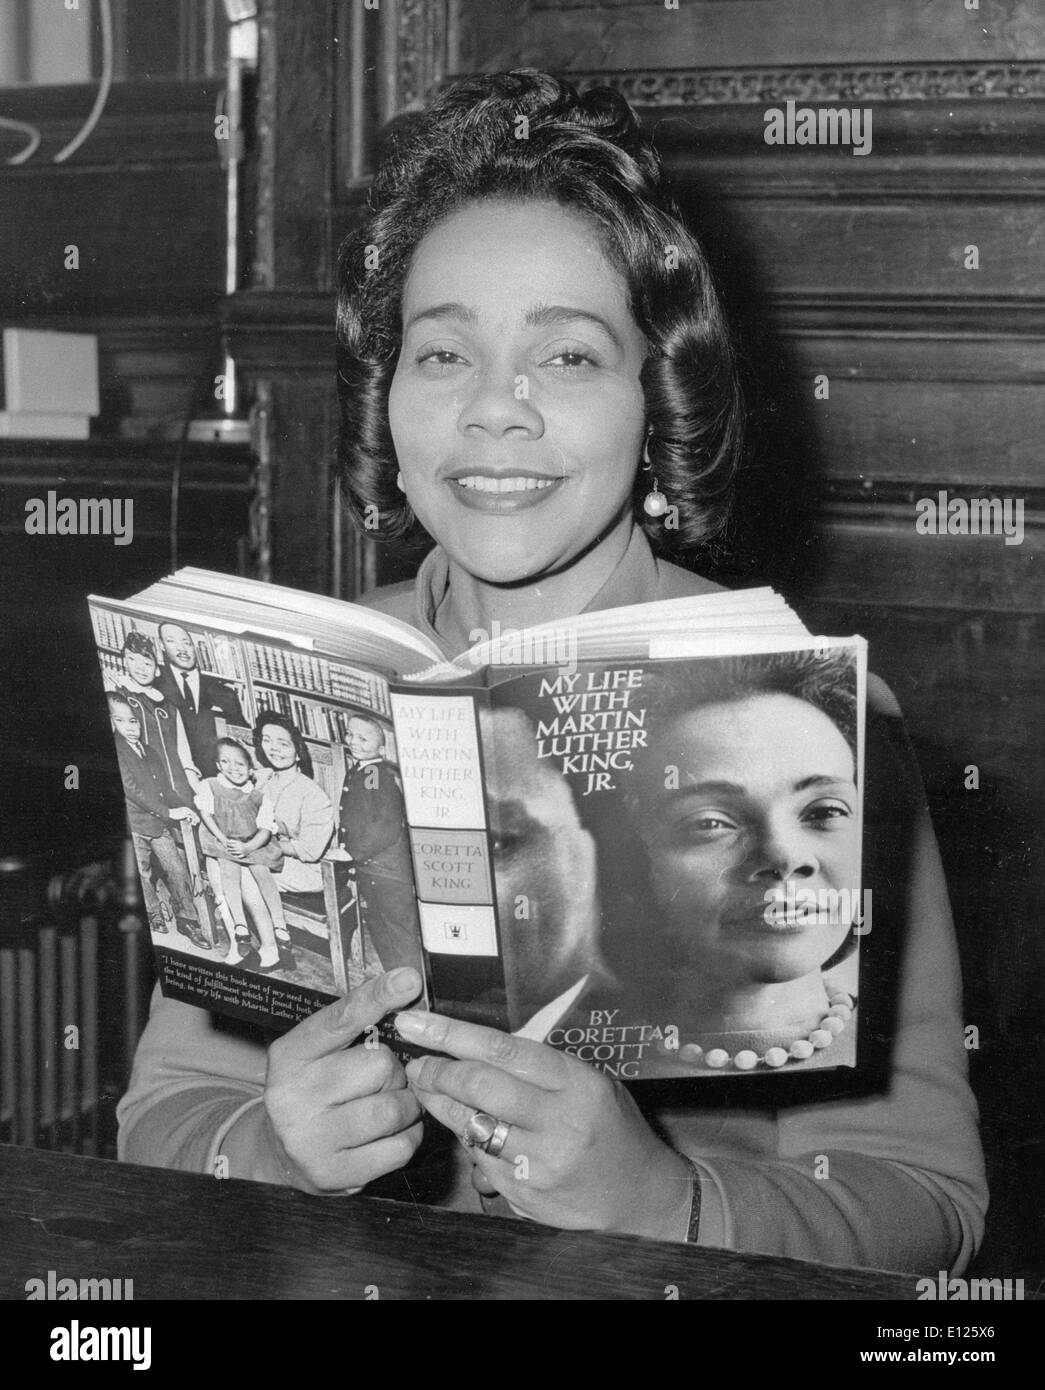 Jan 31, 2006; Atlanta, GA, USA; (File Photo: 1969 ) CORETTA SCOTT KING (April 27, 1927 Ð January 30, 2006) was the wife of the slain civil rights activist Martin Luther King, Jr. and a noted community leader in her own right. She died January 30, 2006 at the age of 78 in her sleep at a Mexican rehabilitation center where she was undergoing holistic therapy for her stroke. Her body will be returned to Atlanta and buried next to her husband at The King Center. PHOTO: At Launch of her book 'My Life with Martin Luther King Jr.'. (Credit Image: KEYSTONE Pictures USA/ZUMAPRESS.com) Stock Photo